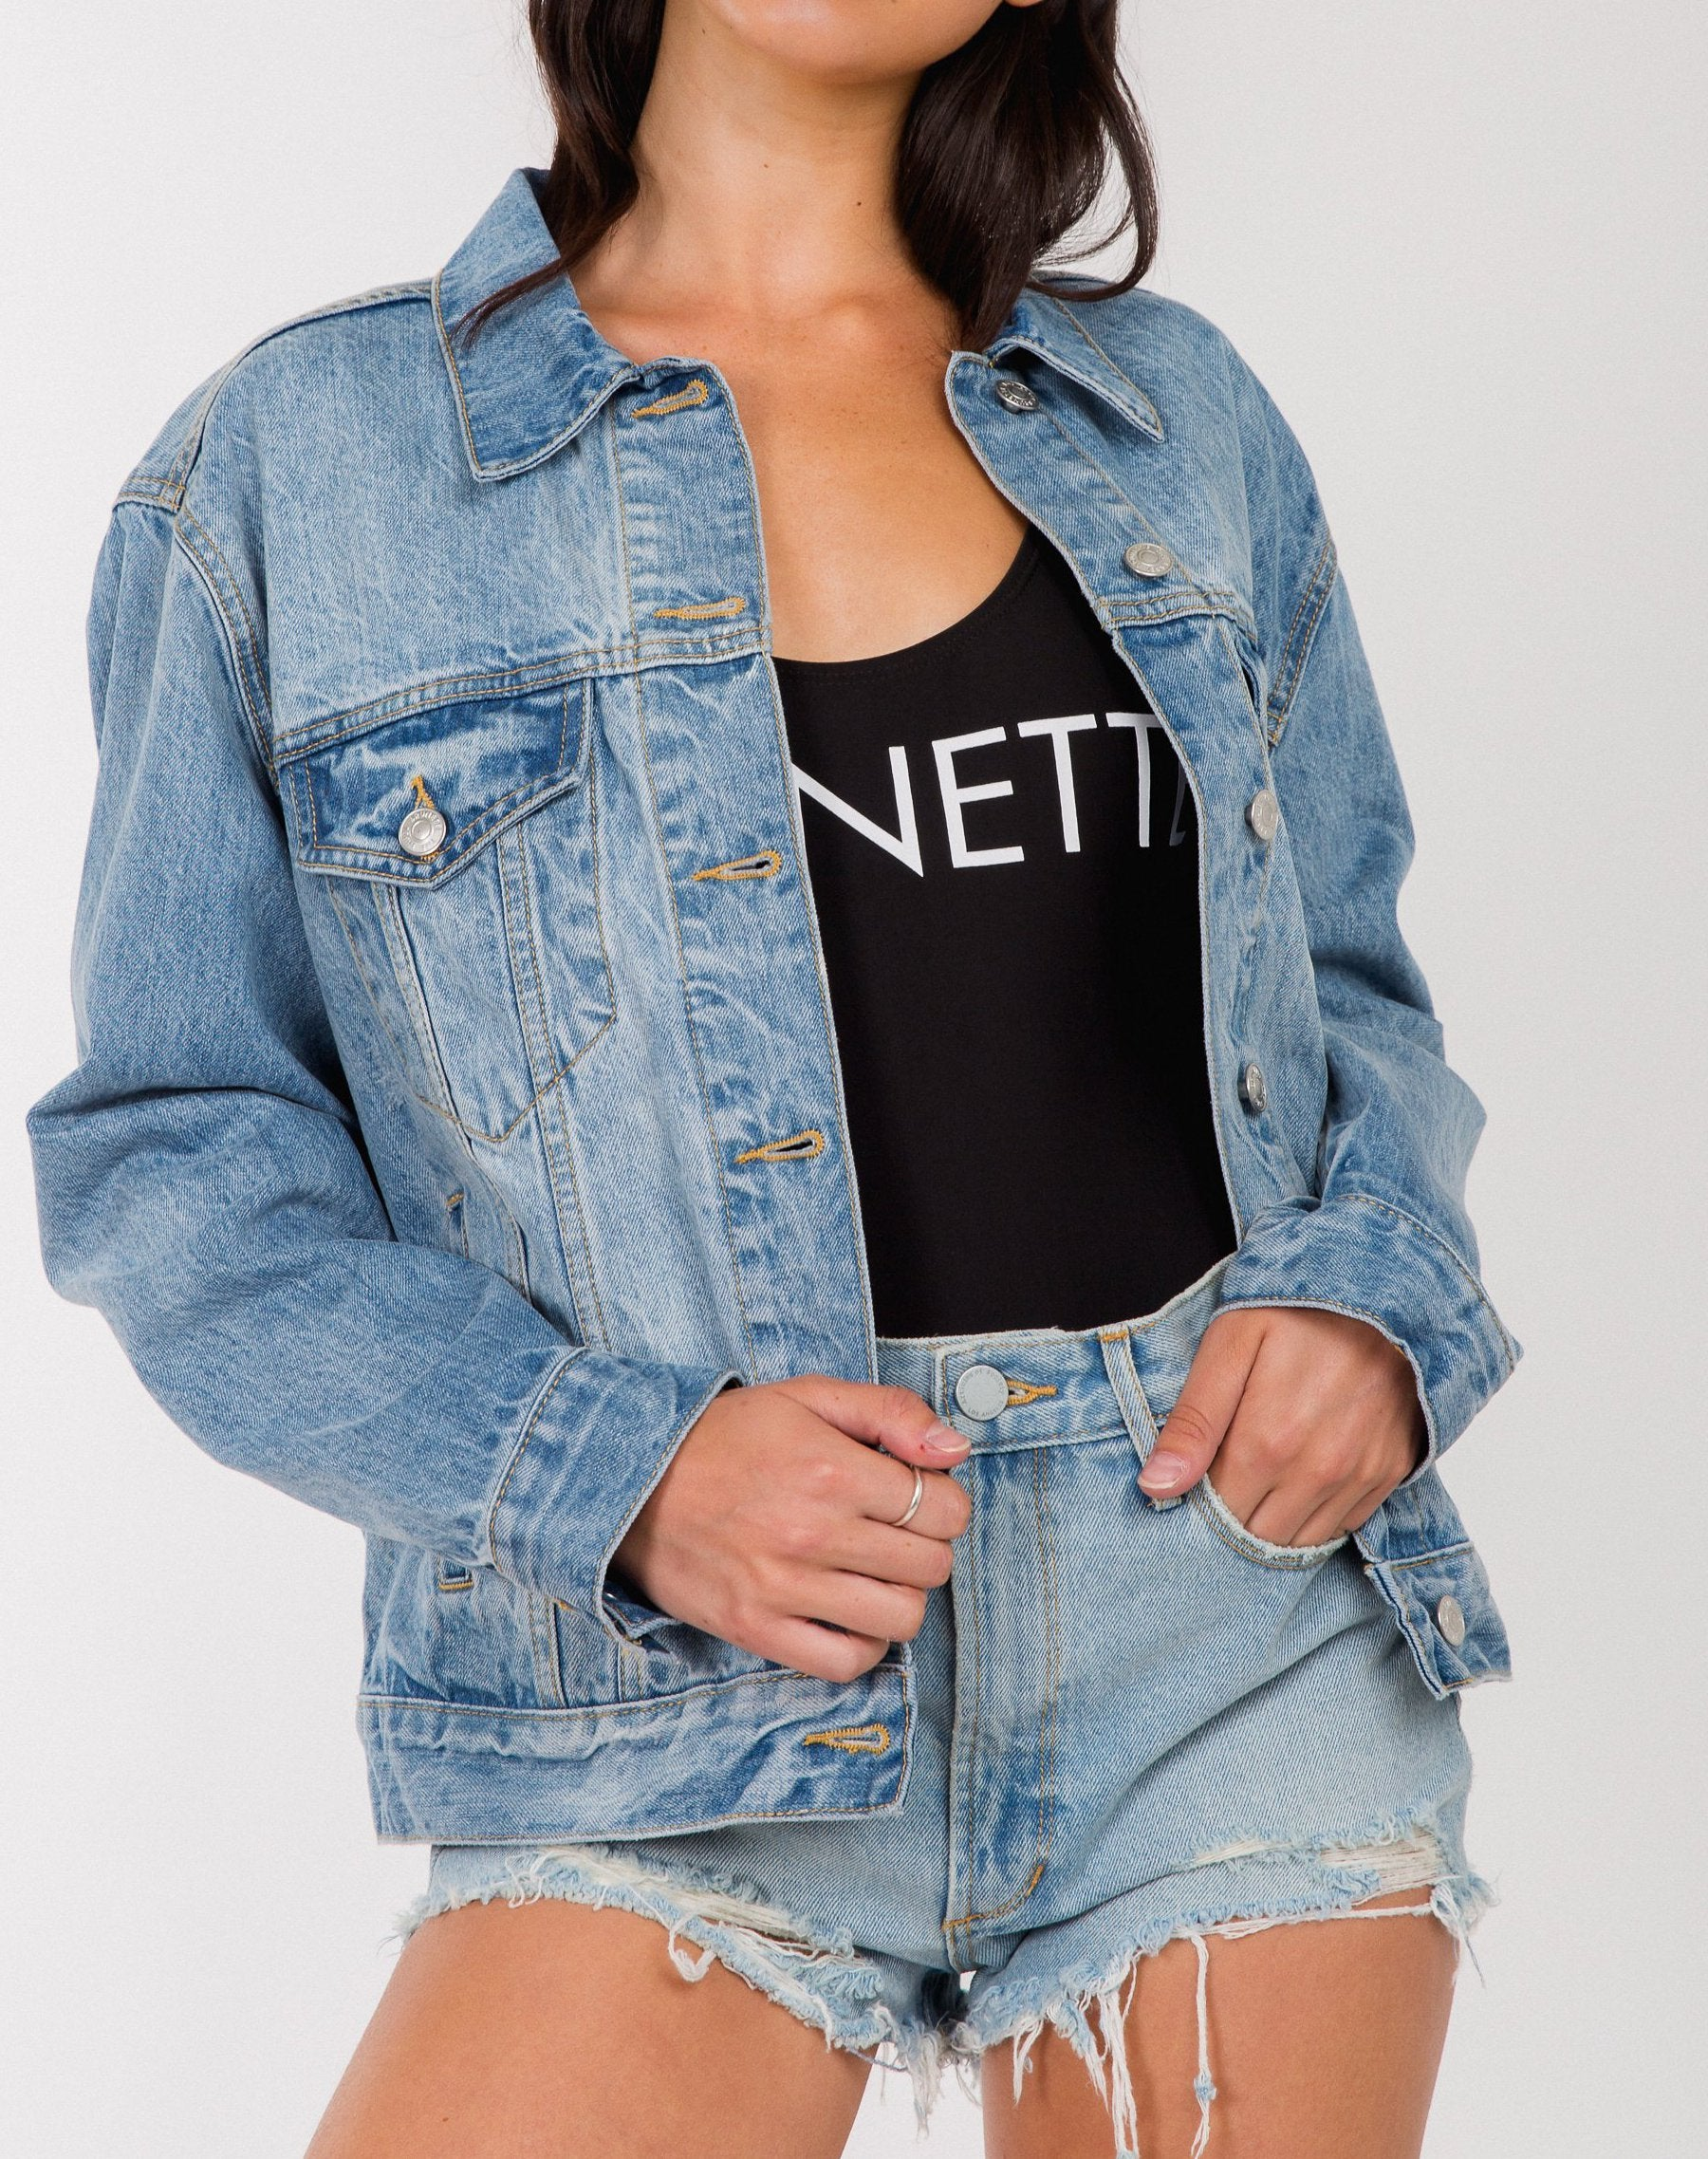 Photo of the Lindsay denim jacket in light wash by Brunette the Label.